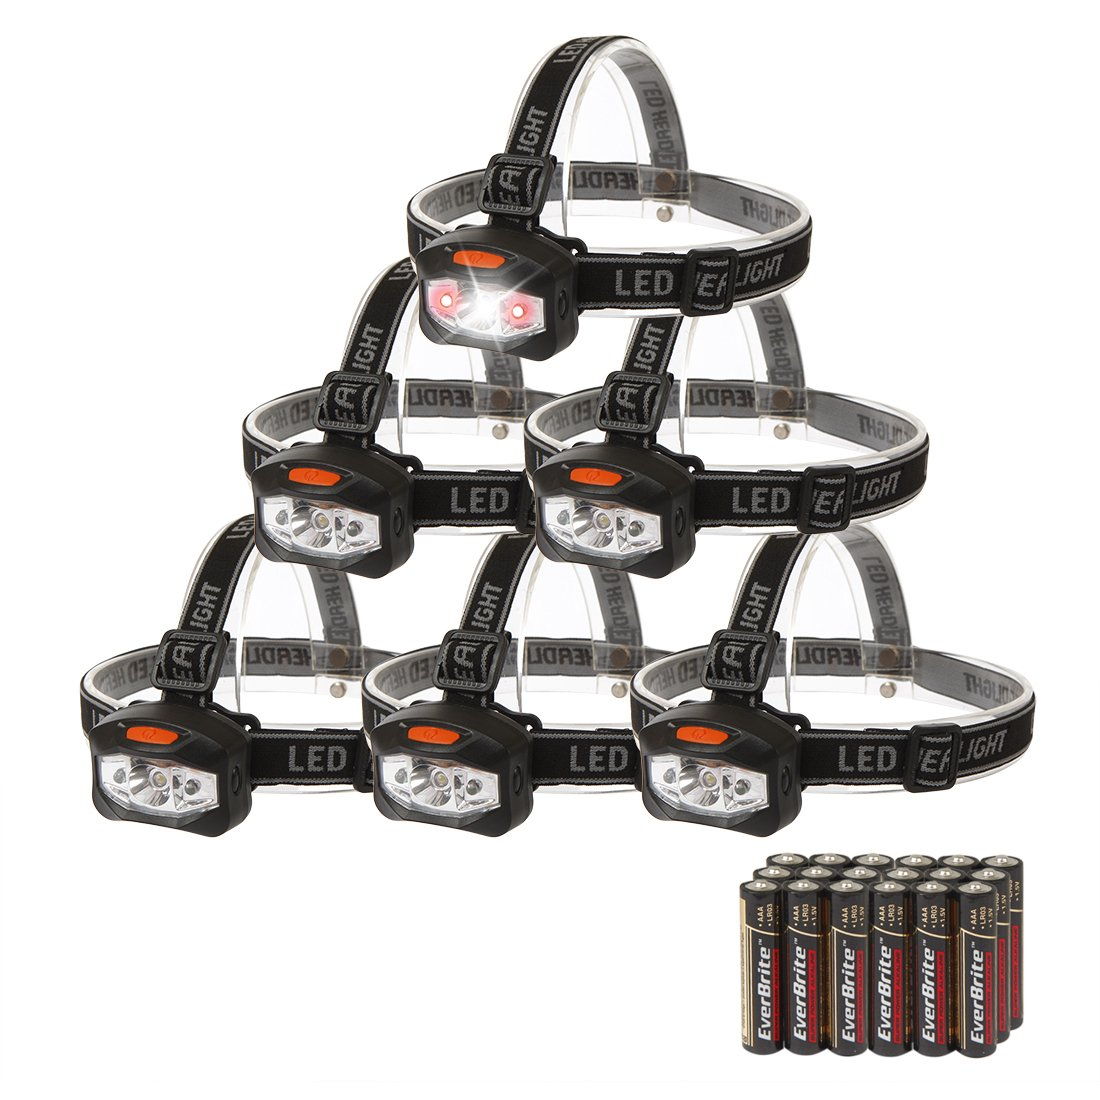 EverBrite 6-pack Headlamp LED 150 Lumens Battery Operated Super Bright with 2 Red Lights AAA Batteries Included by EverBrite